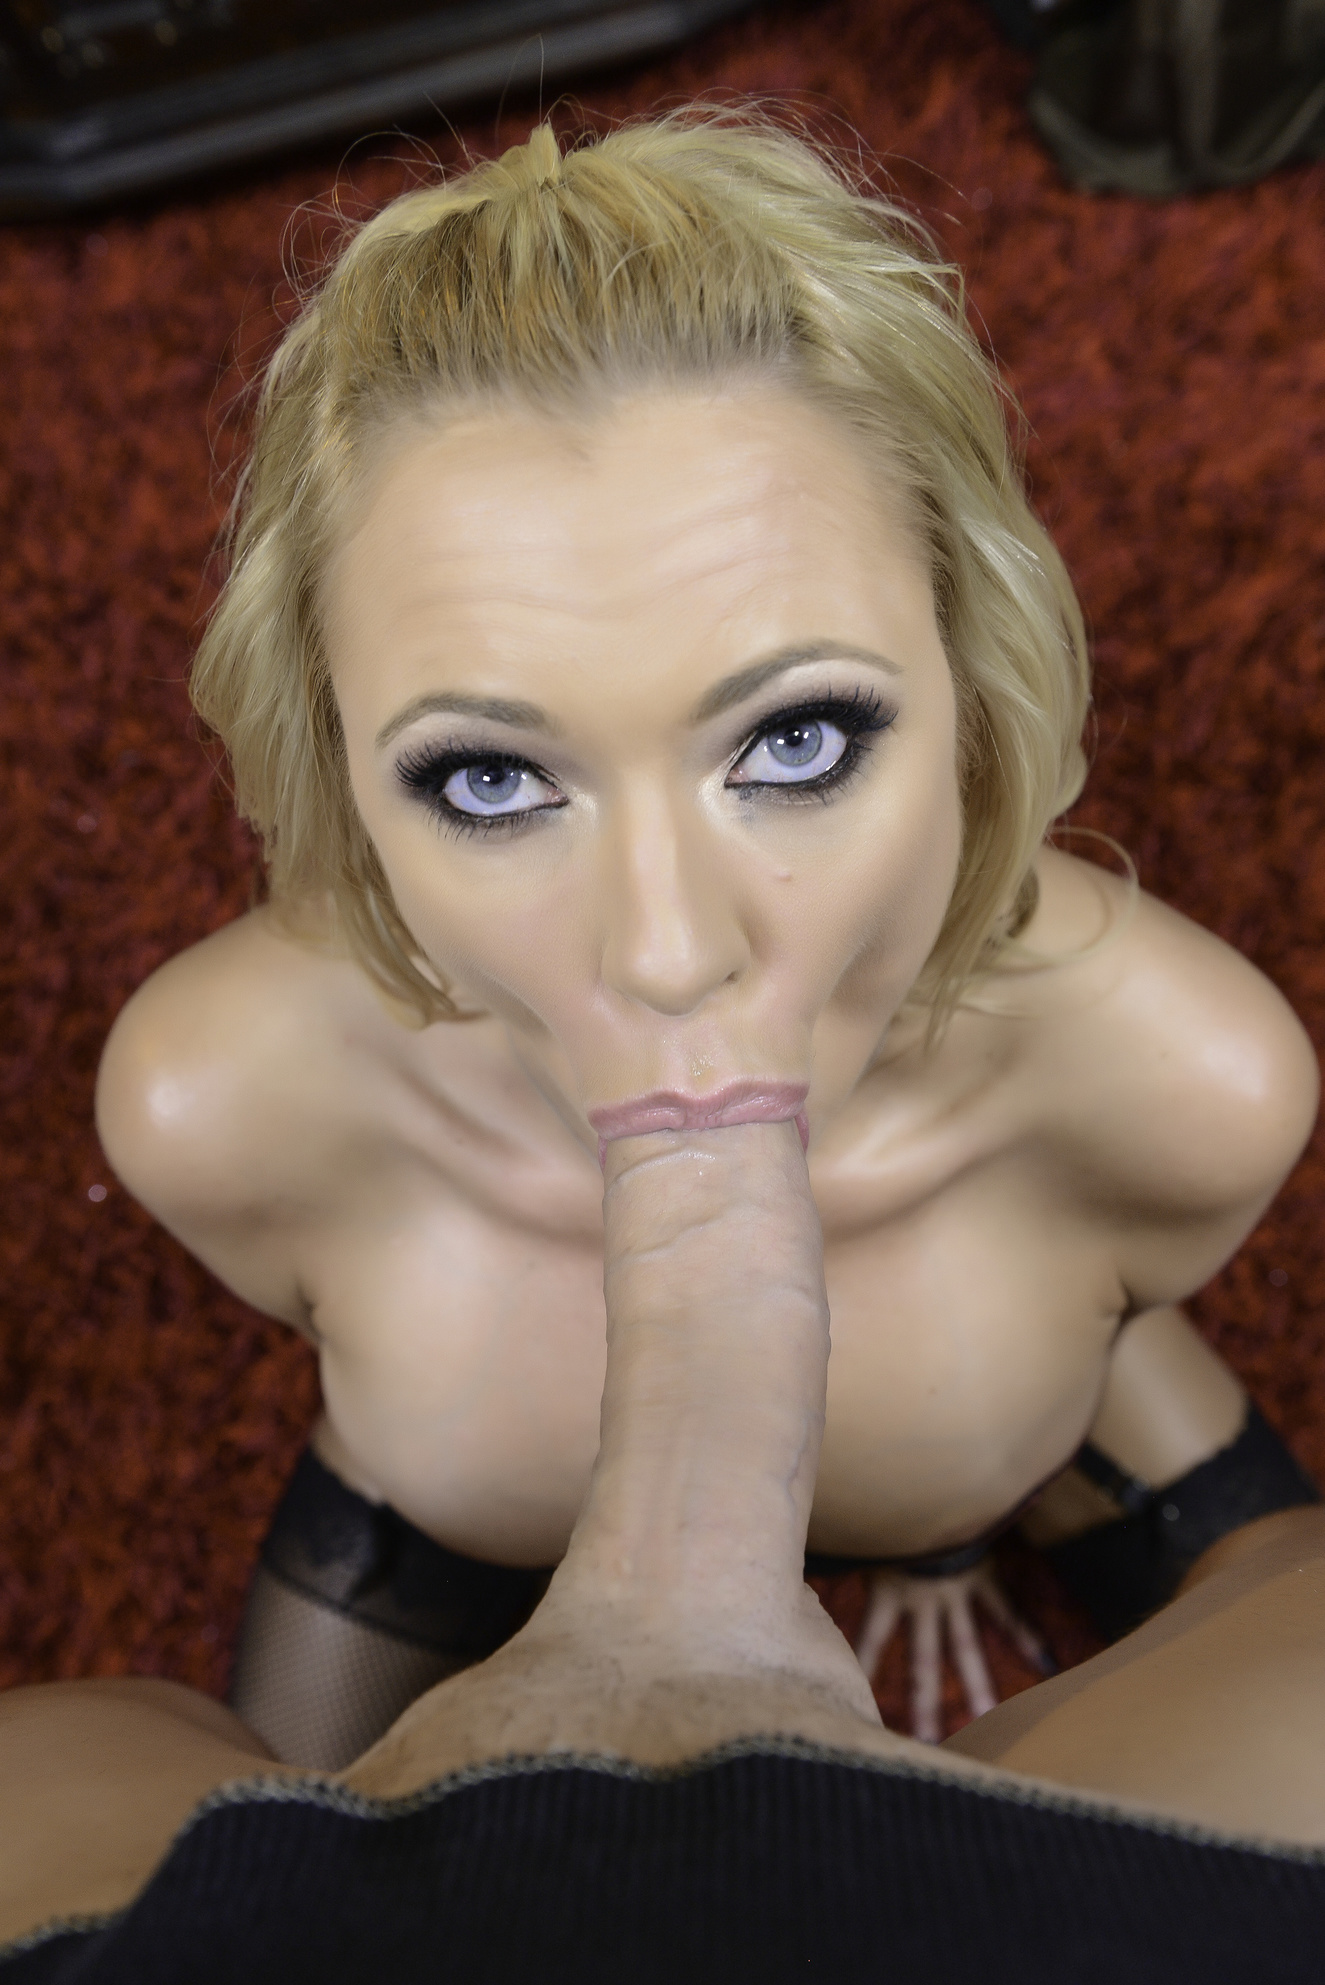 briana banks knows how to please you